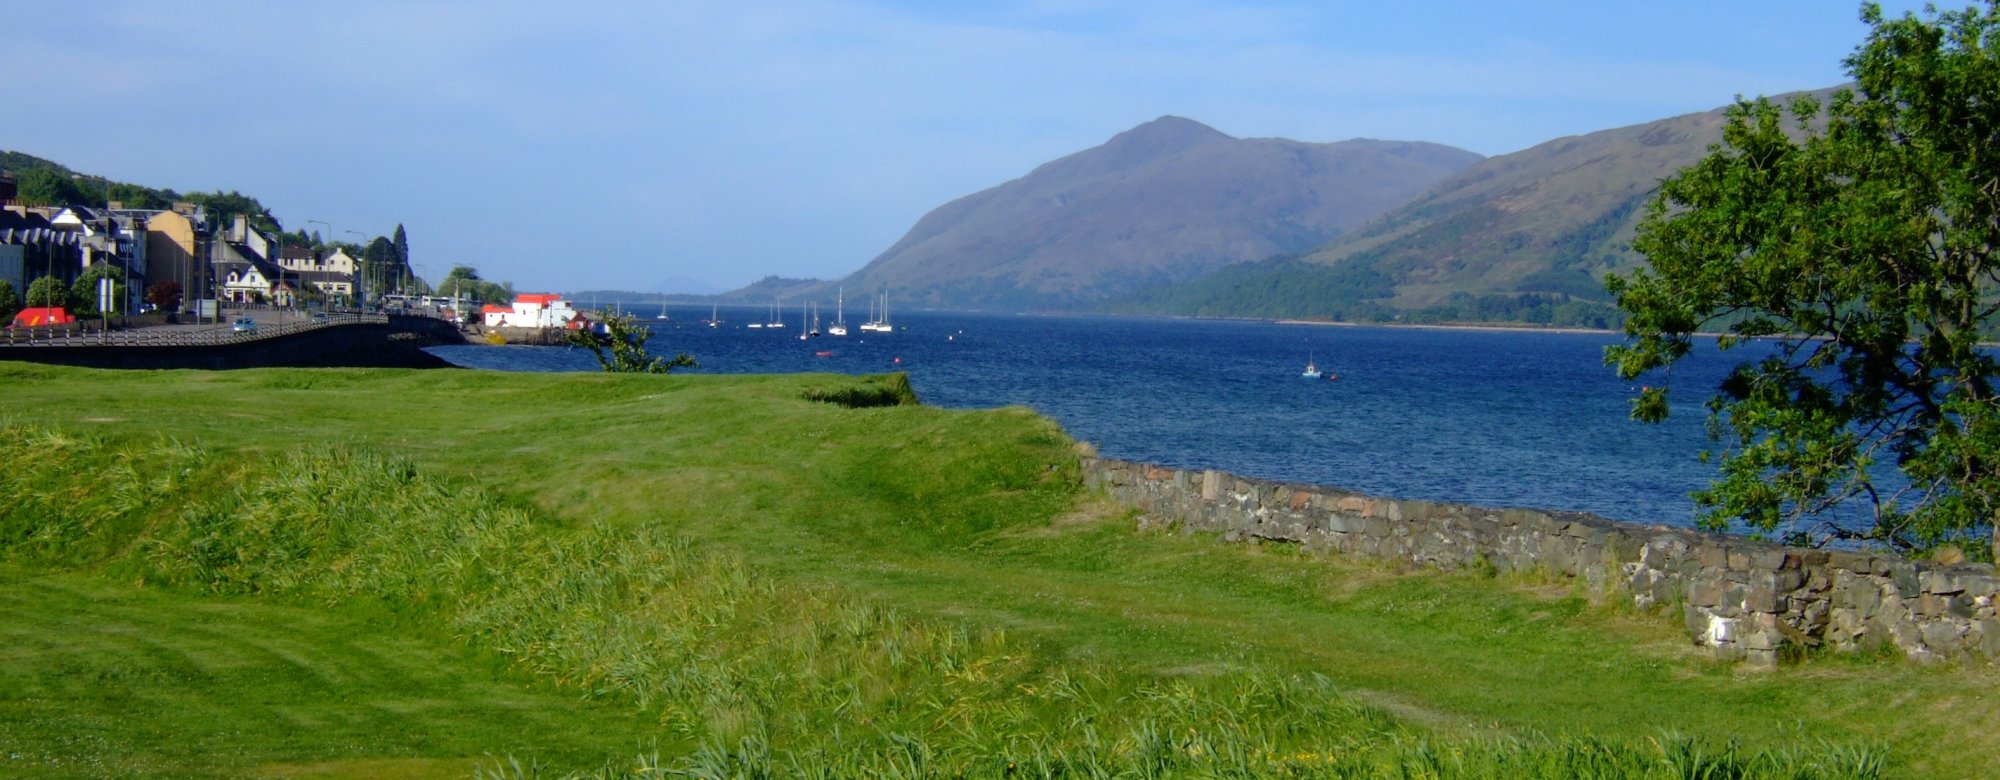 Looking south west down Loch Linnhe, from the monolith marking the start of the Great Glen Way